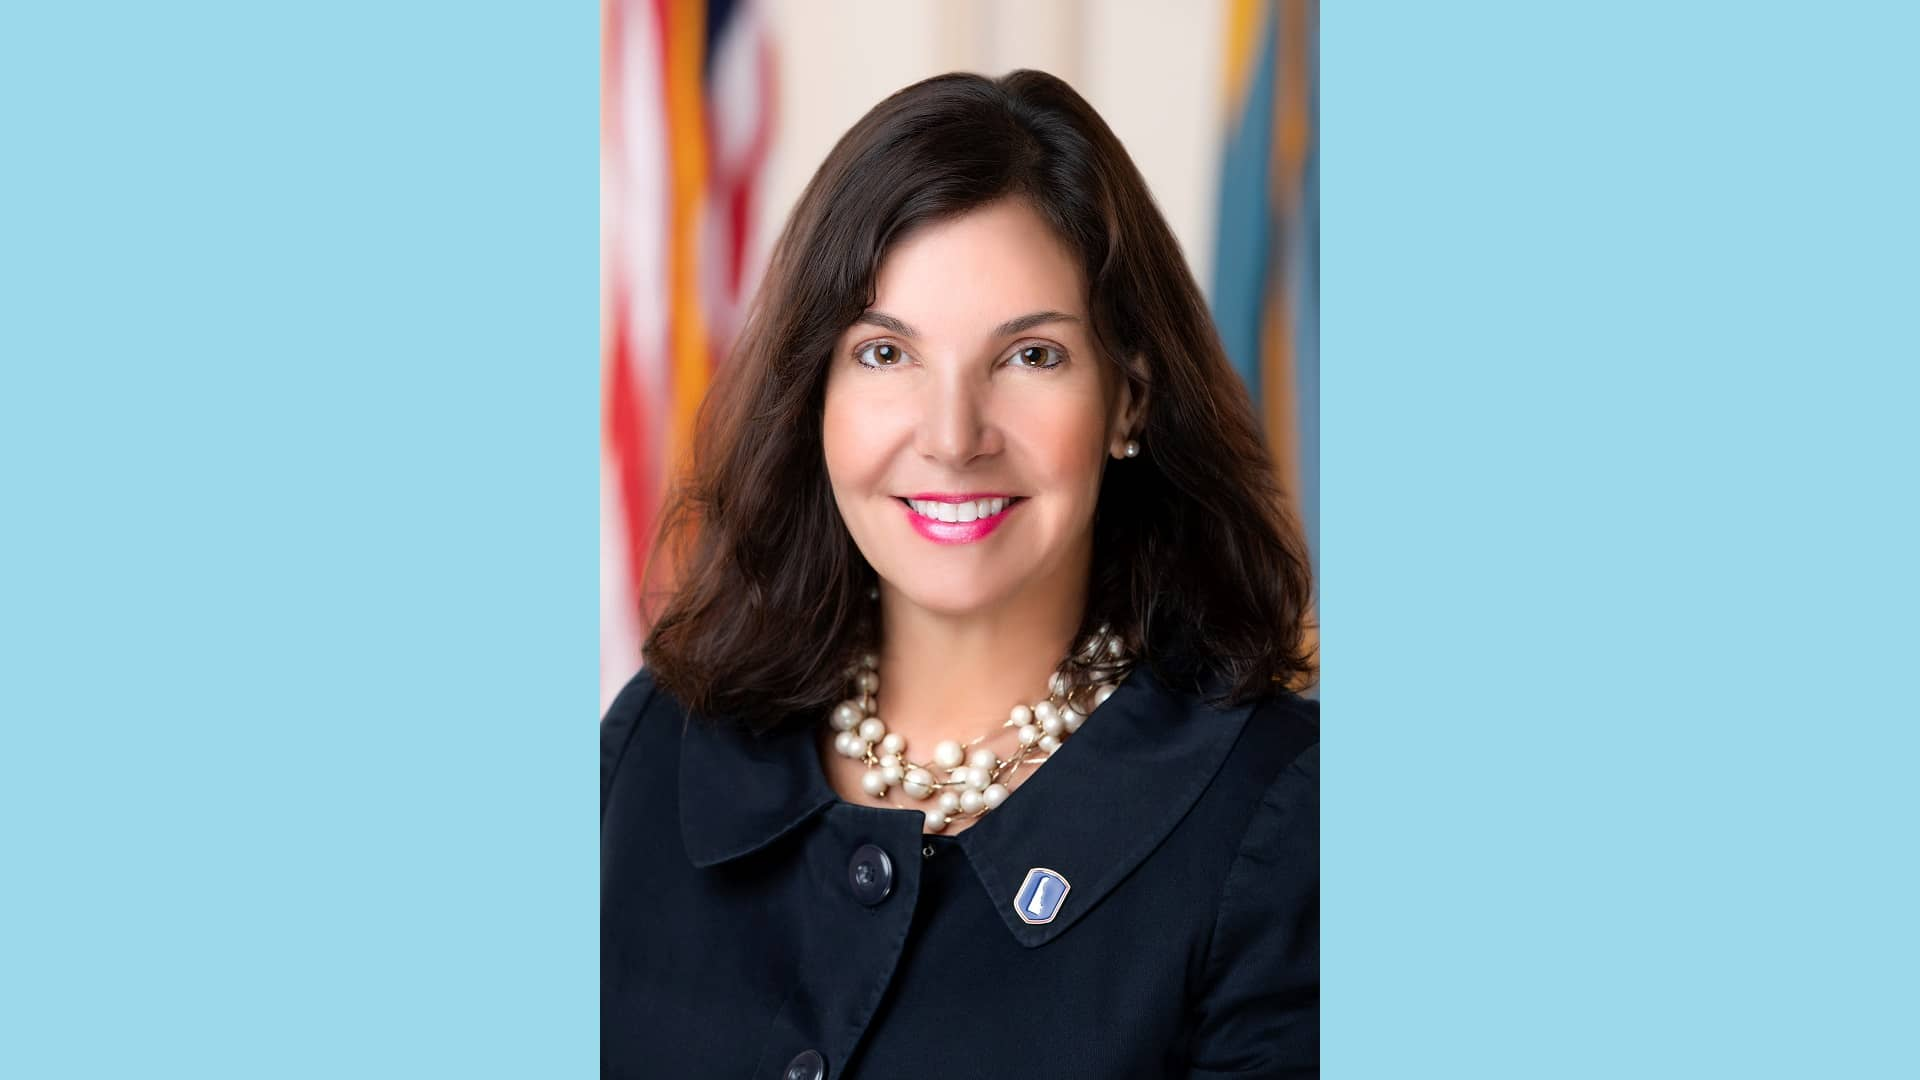 Delaware State Auditor indicted on public corruption charges